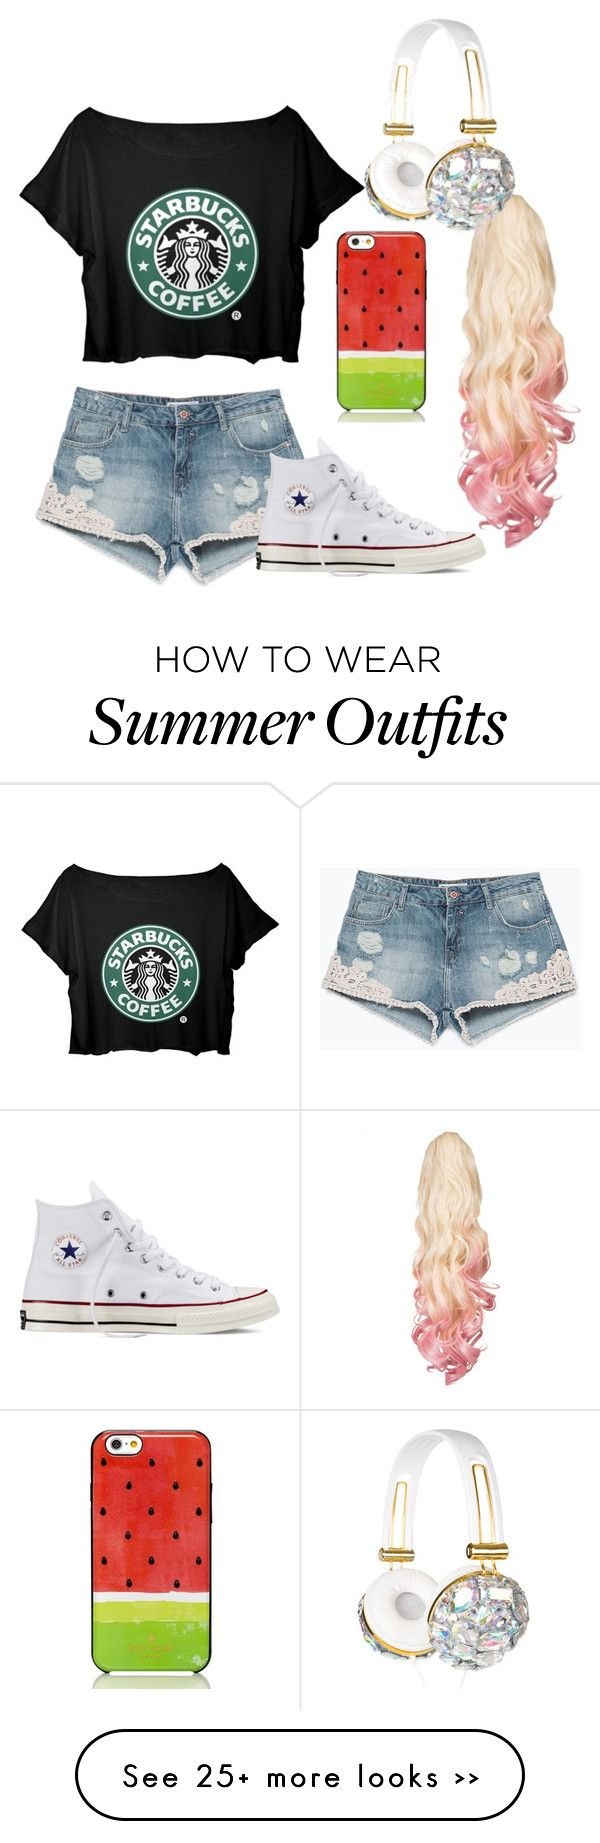 """""""Summer Outfit"""" by evann-mcintosh on Polyvore"""